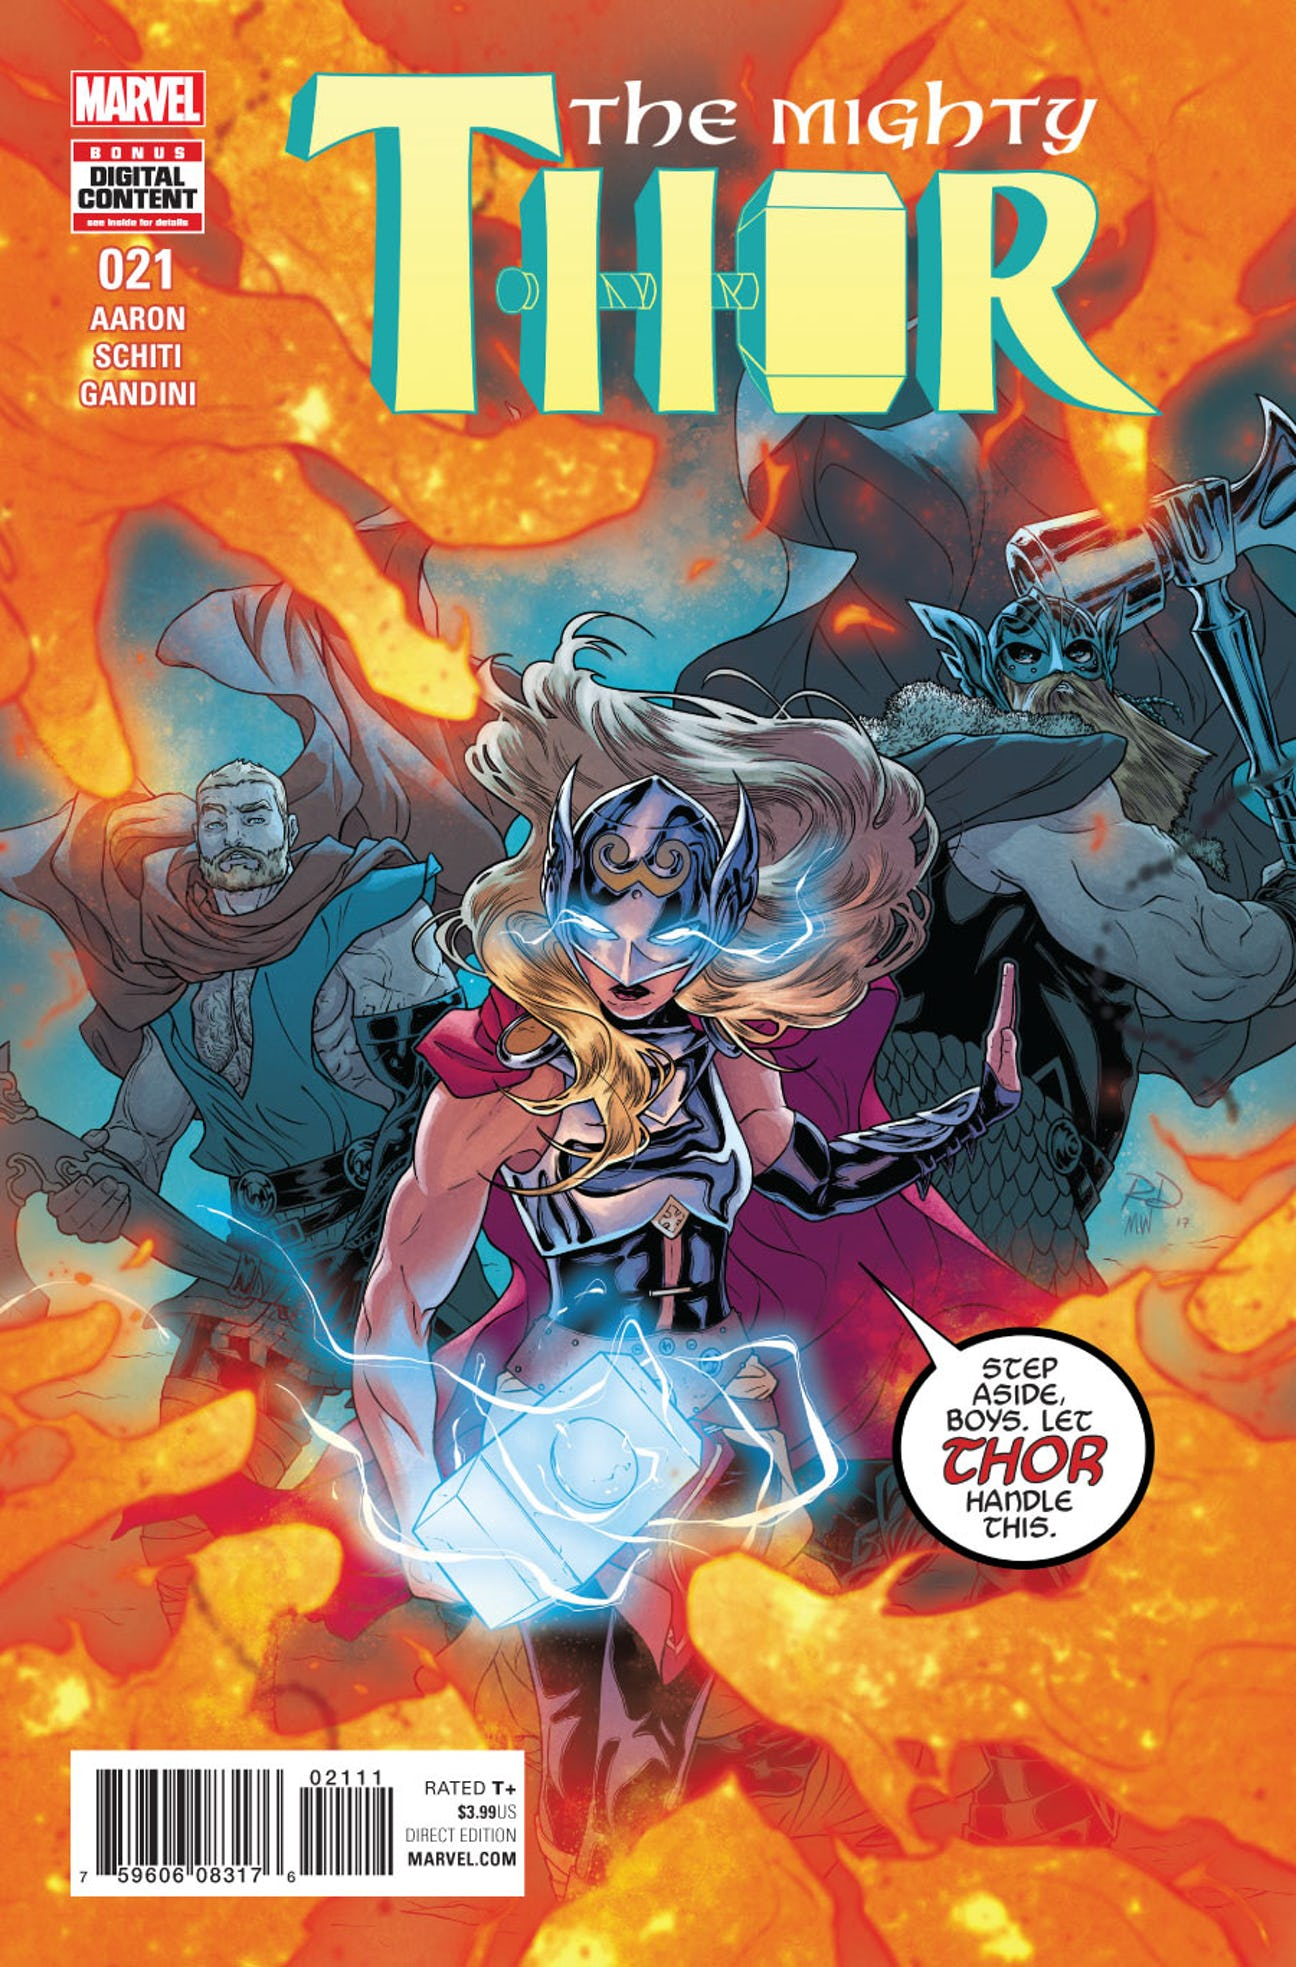 The Mighty Thor #21 Review